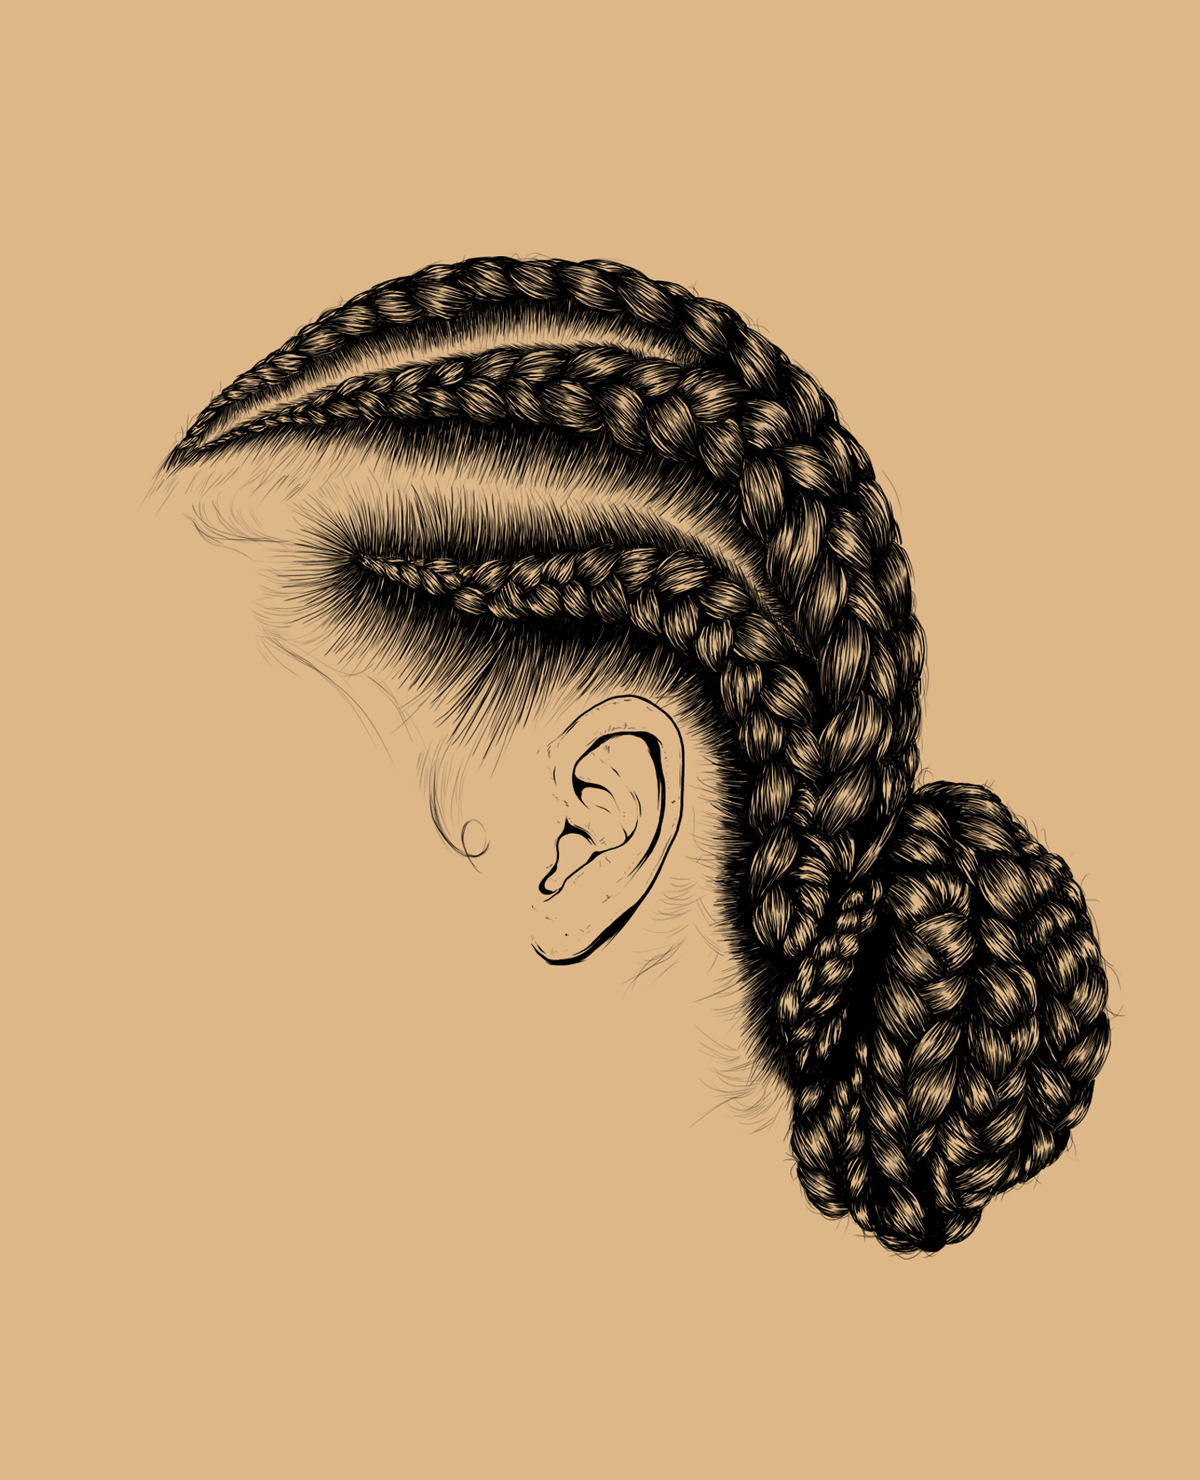 braids, hair, illustration, digital art, illustrator